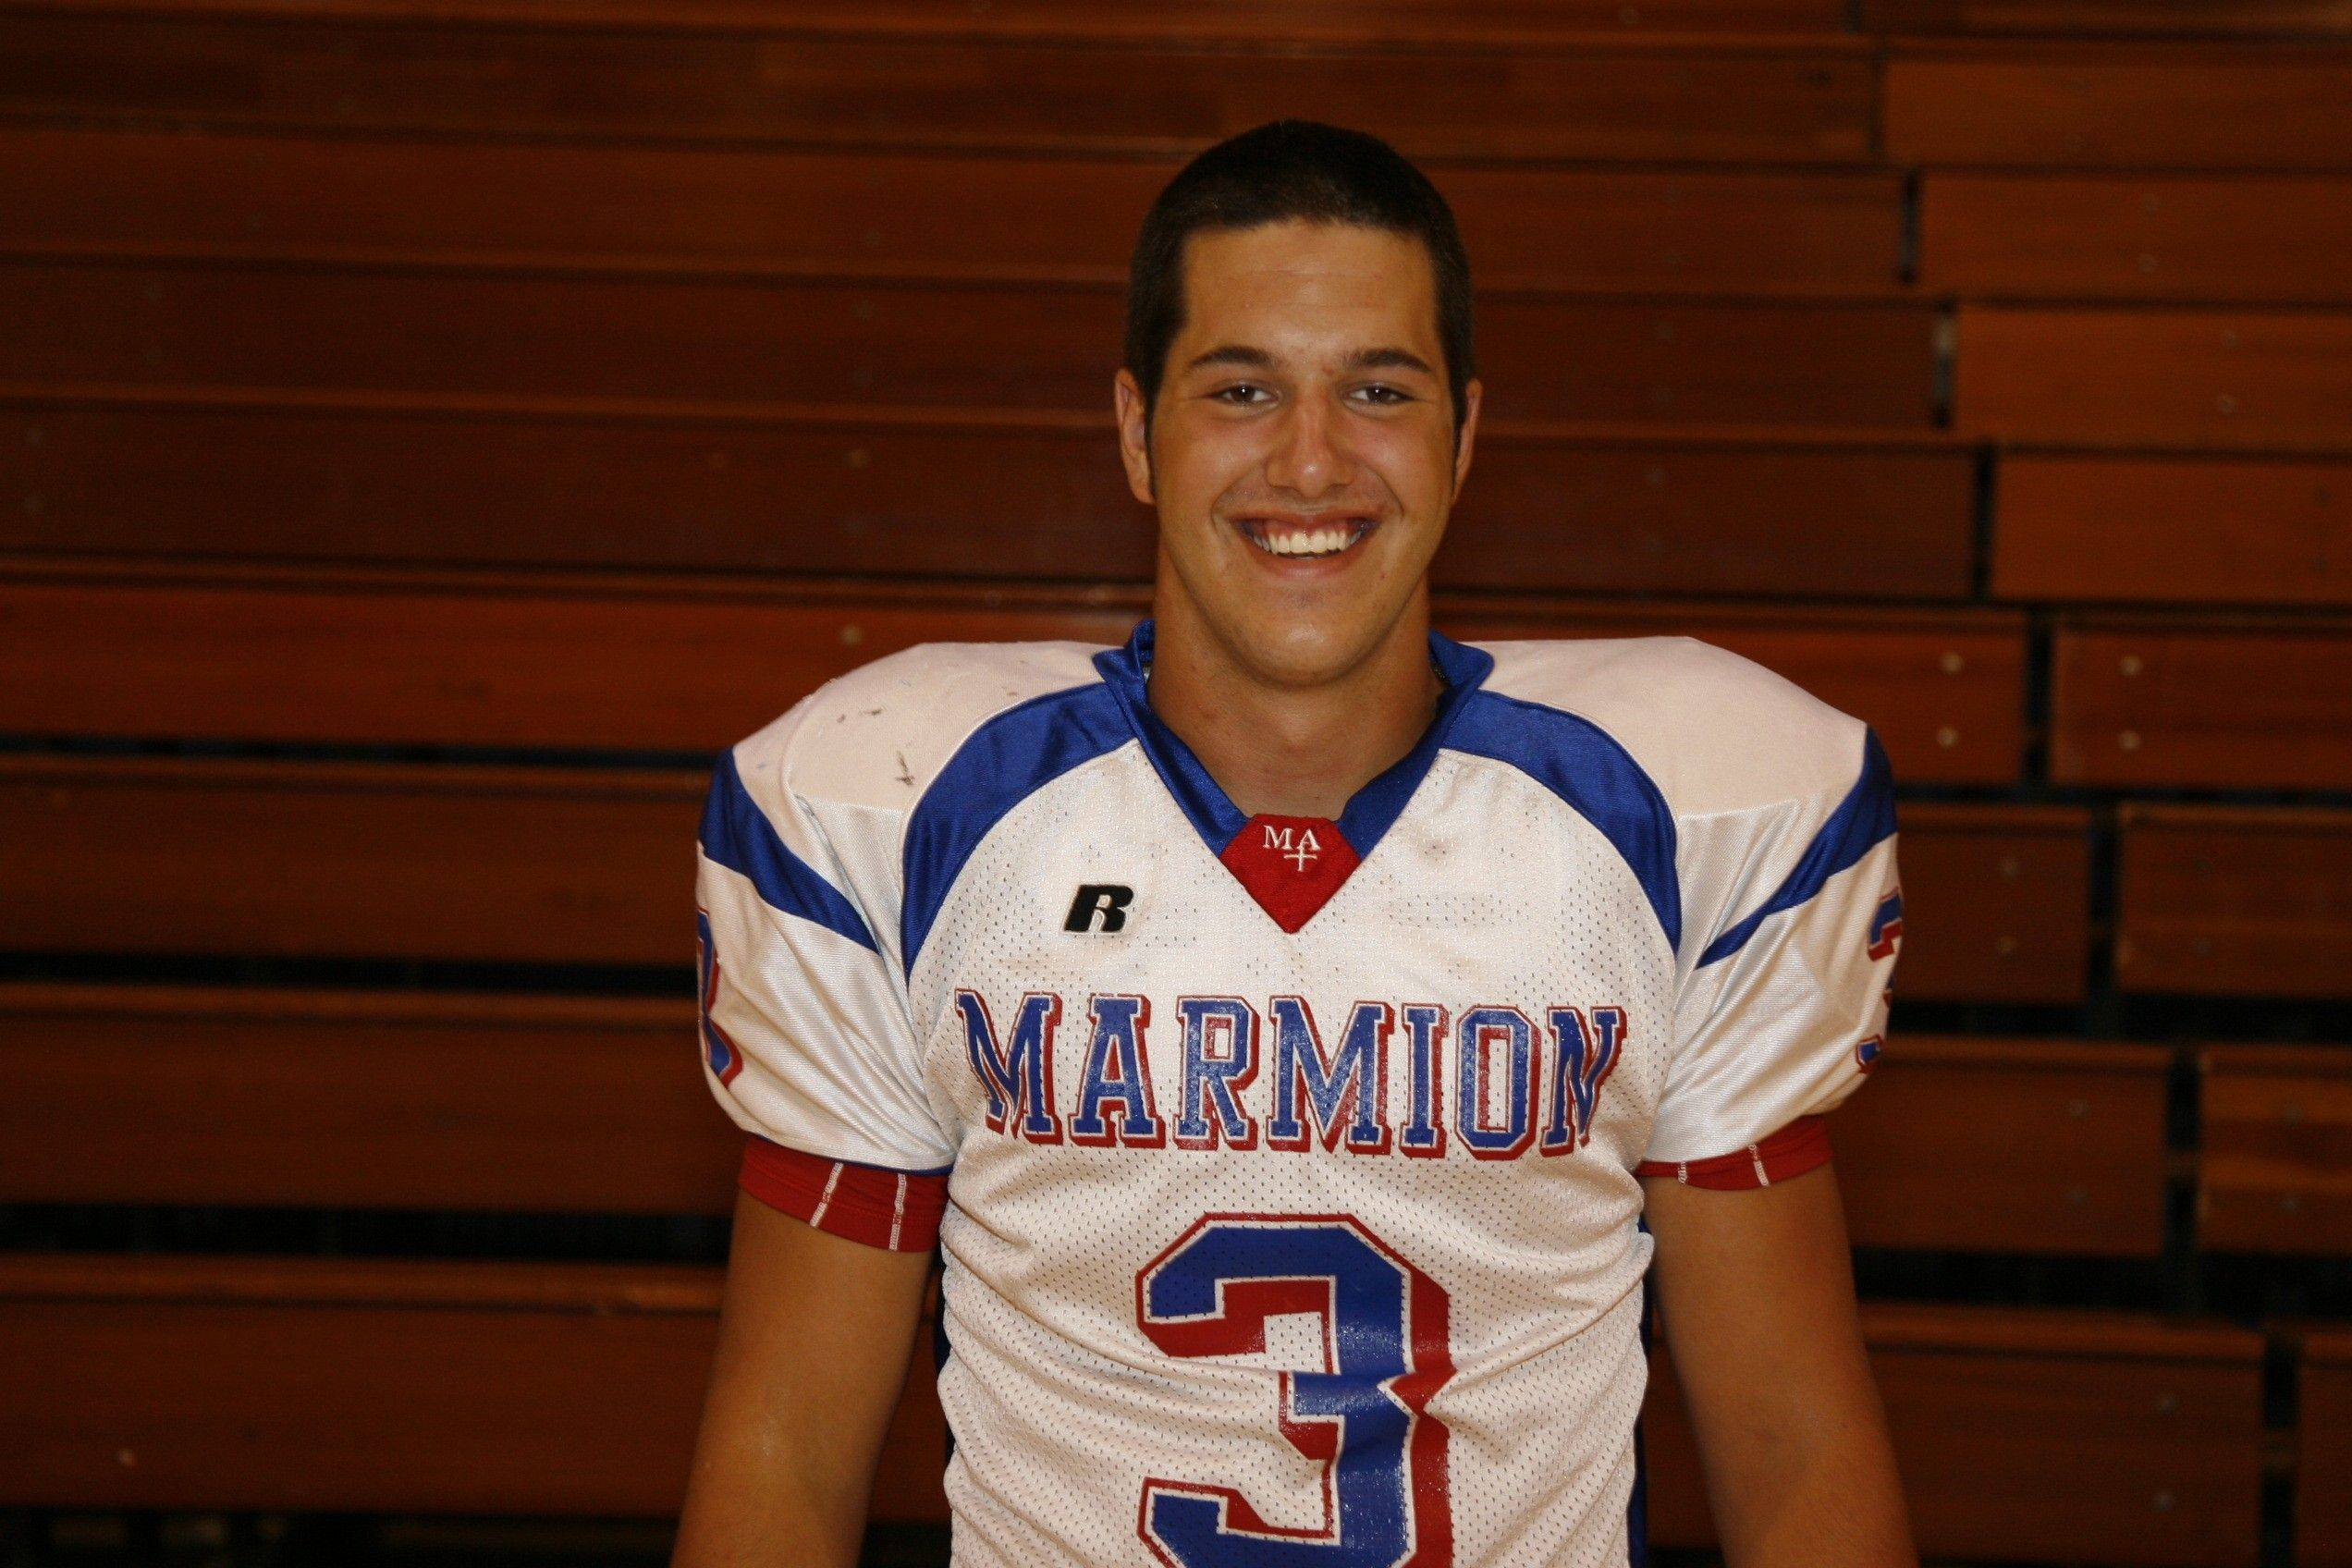 Nick Scoliere, Marmion all-area football player